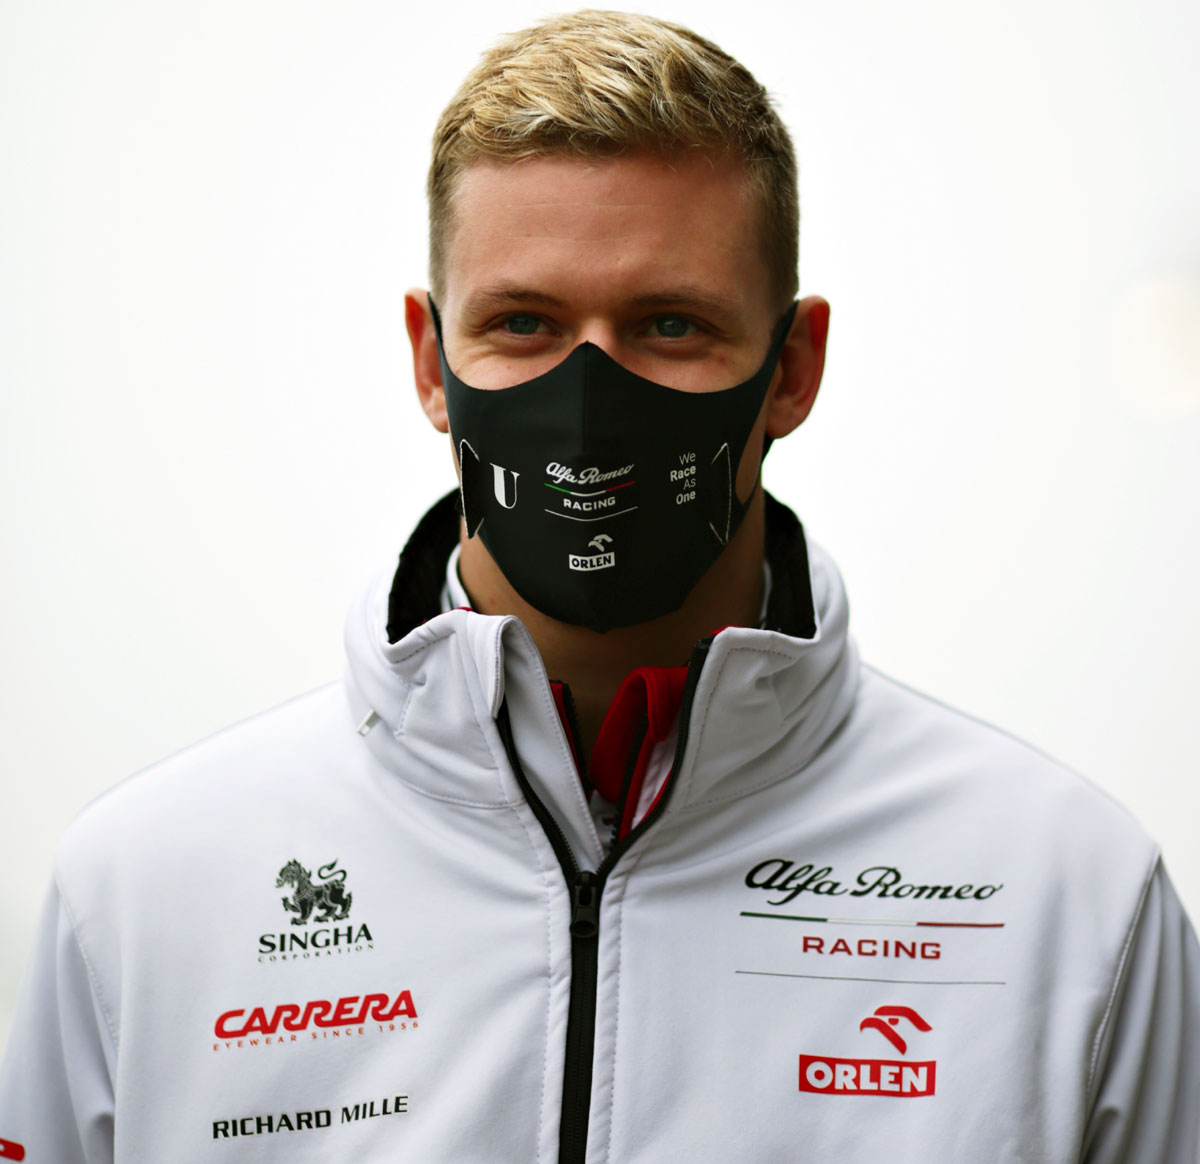 Michael Schumacher's son Mick to race for Haas F1 in 2021 ...